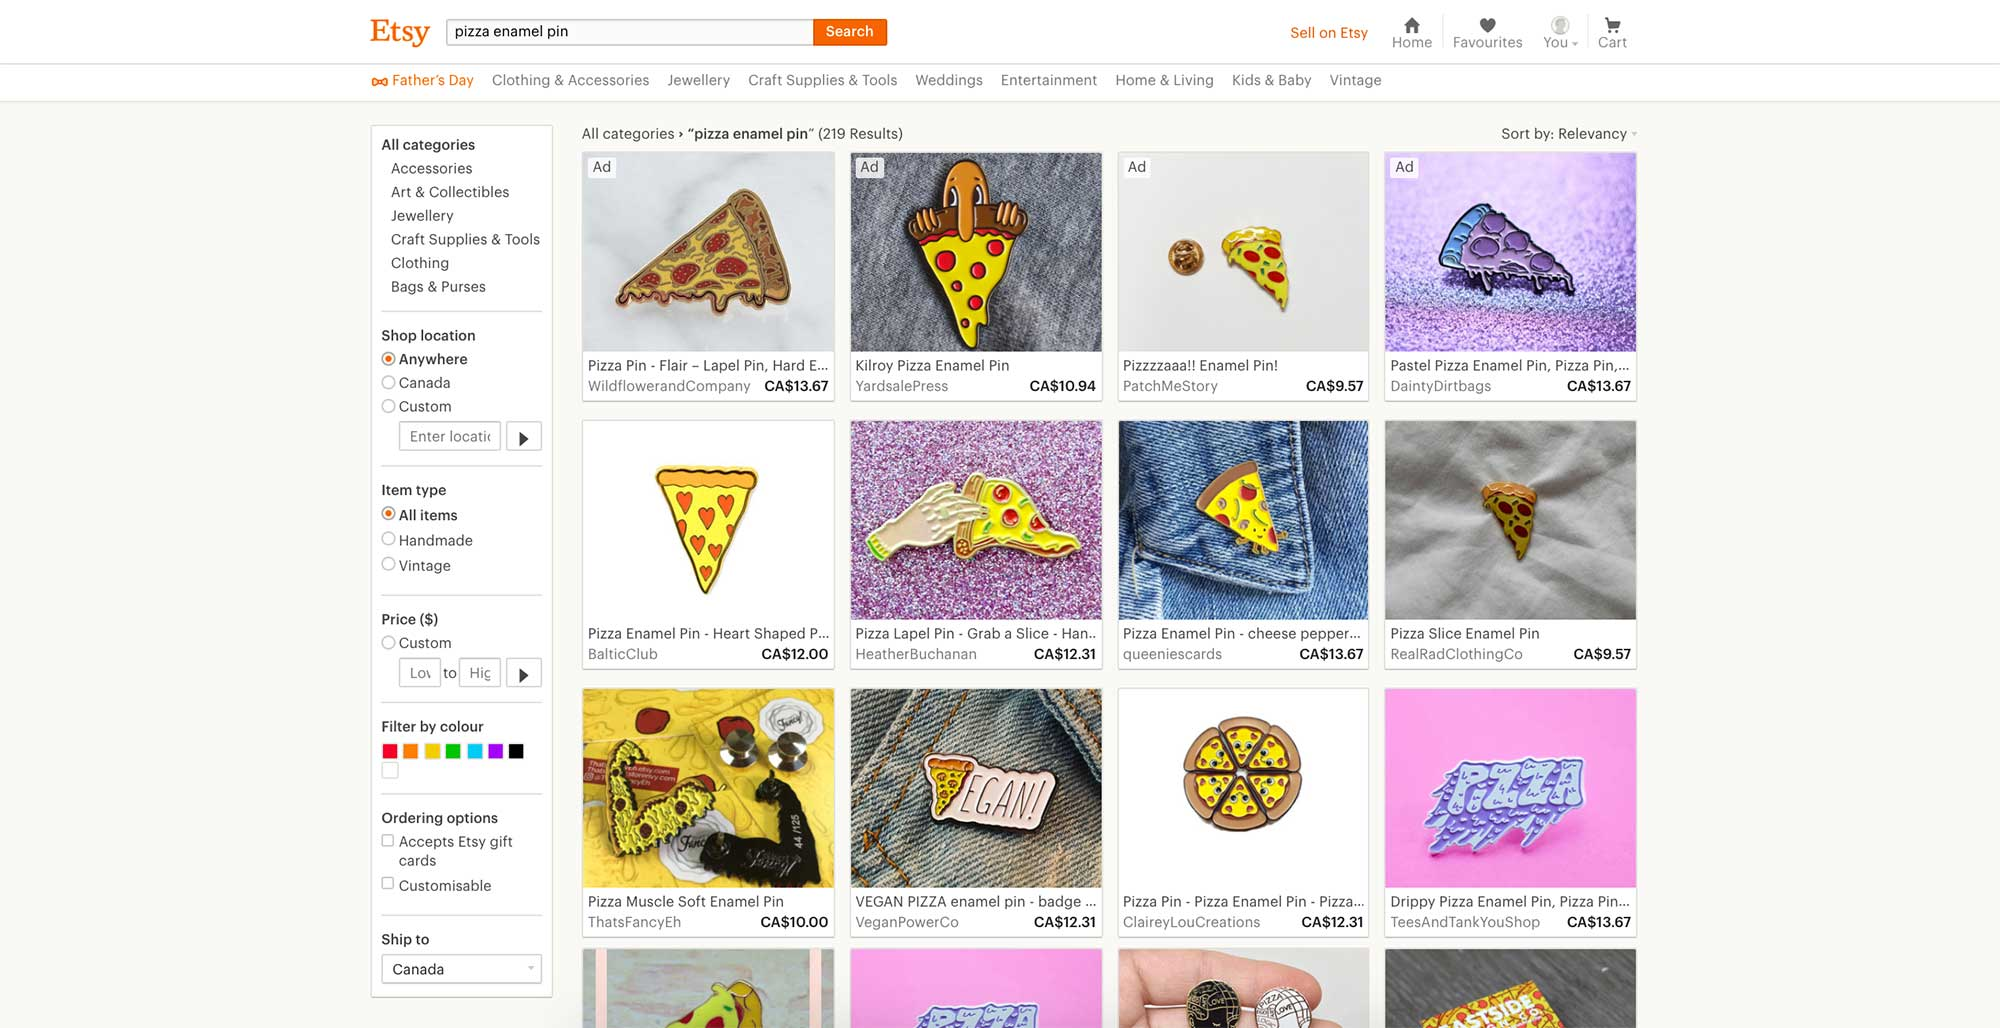 Pizza Enamel Pin Etsy Results